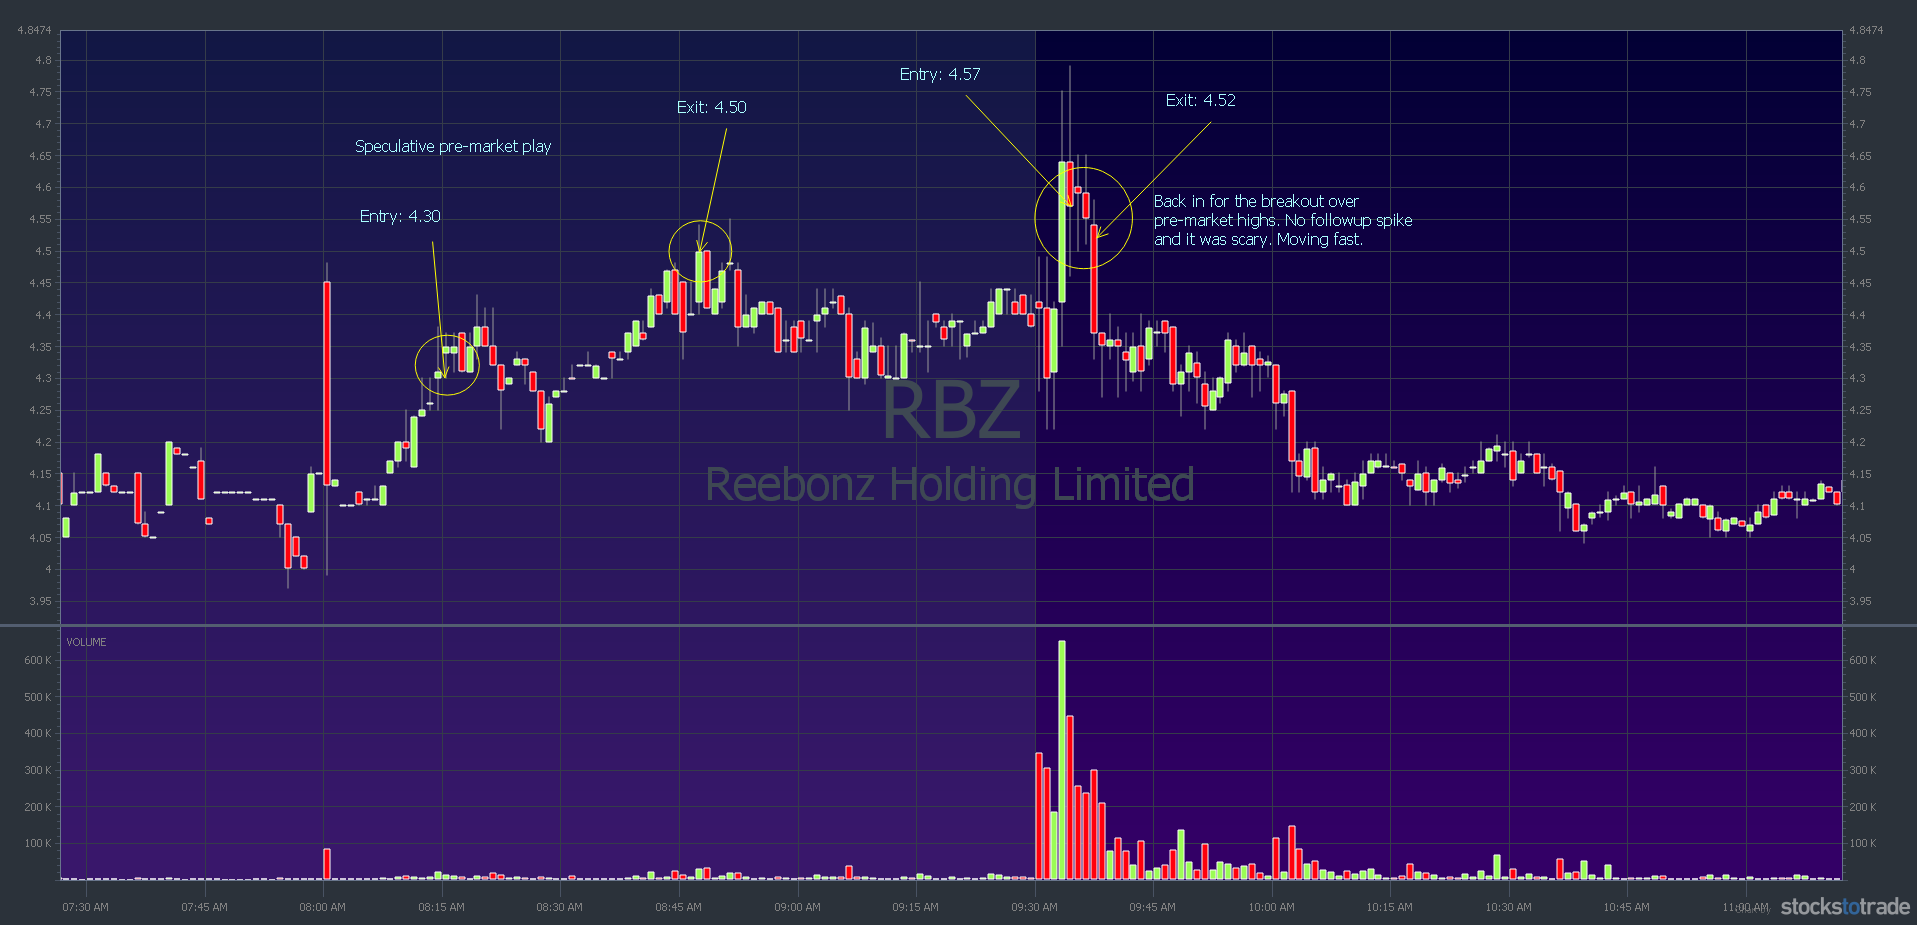 RBZ chart July 2: speculative buy and attempted breakout over pre-market highs